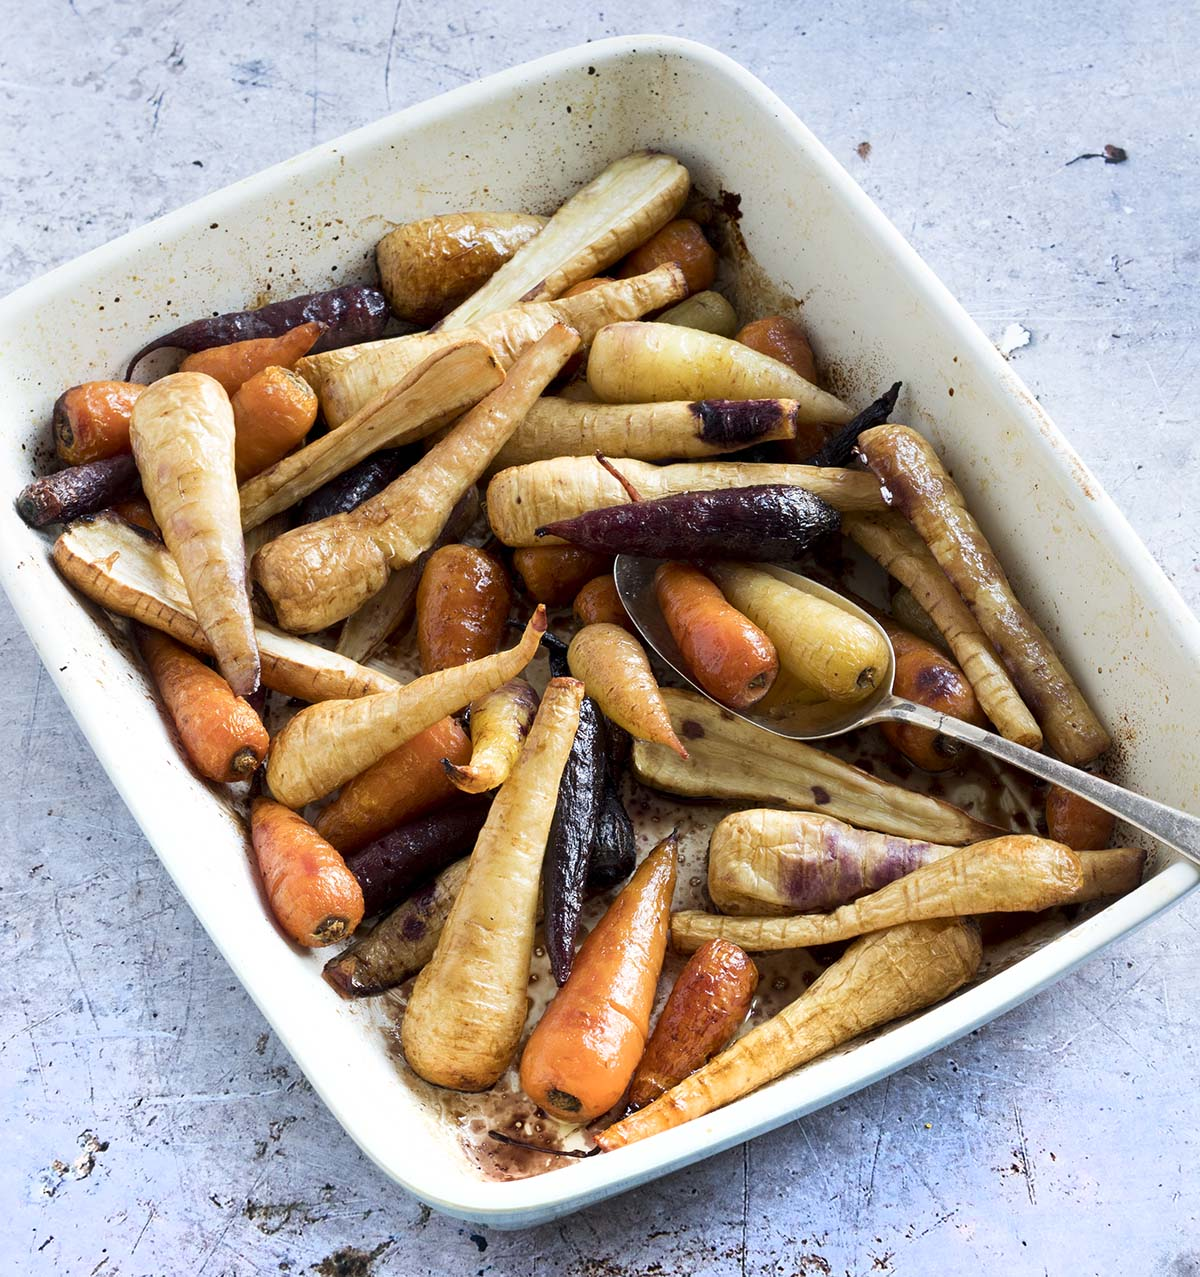 maple balsamic roasted carrots and parsnips by Sneaky Veg